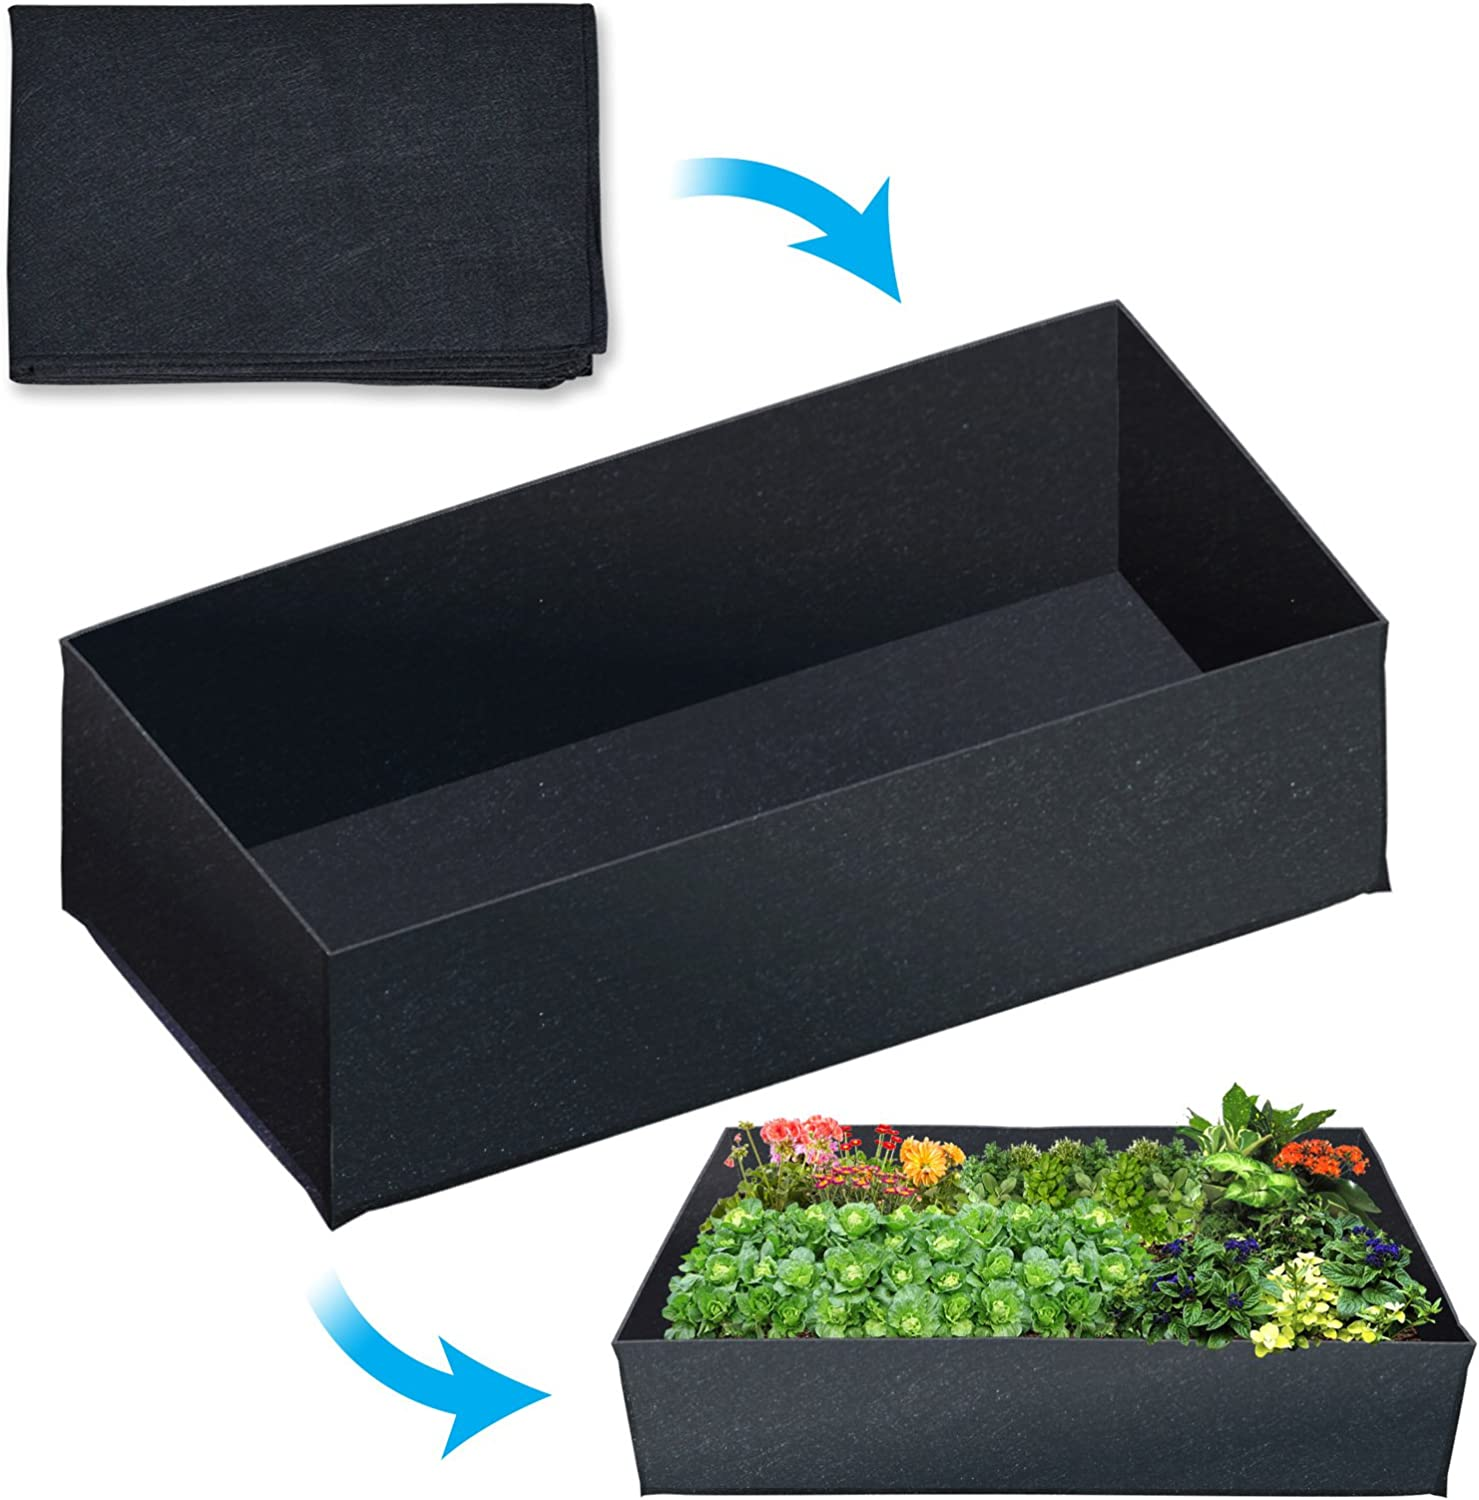 Veg Herb Flower Wood Plant Tub Containers 2 x Harris Wooden Square Planters